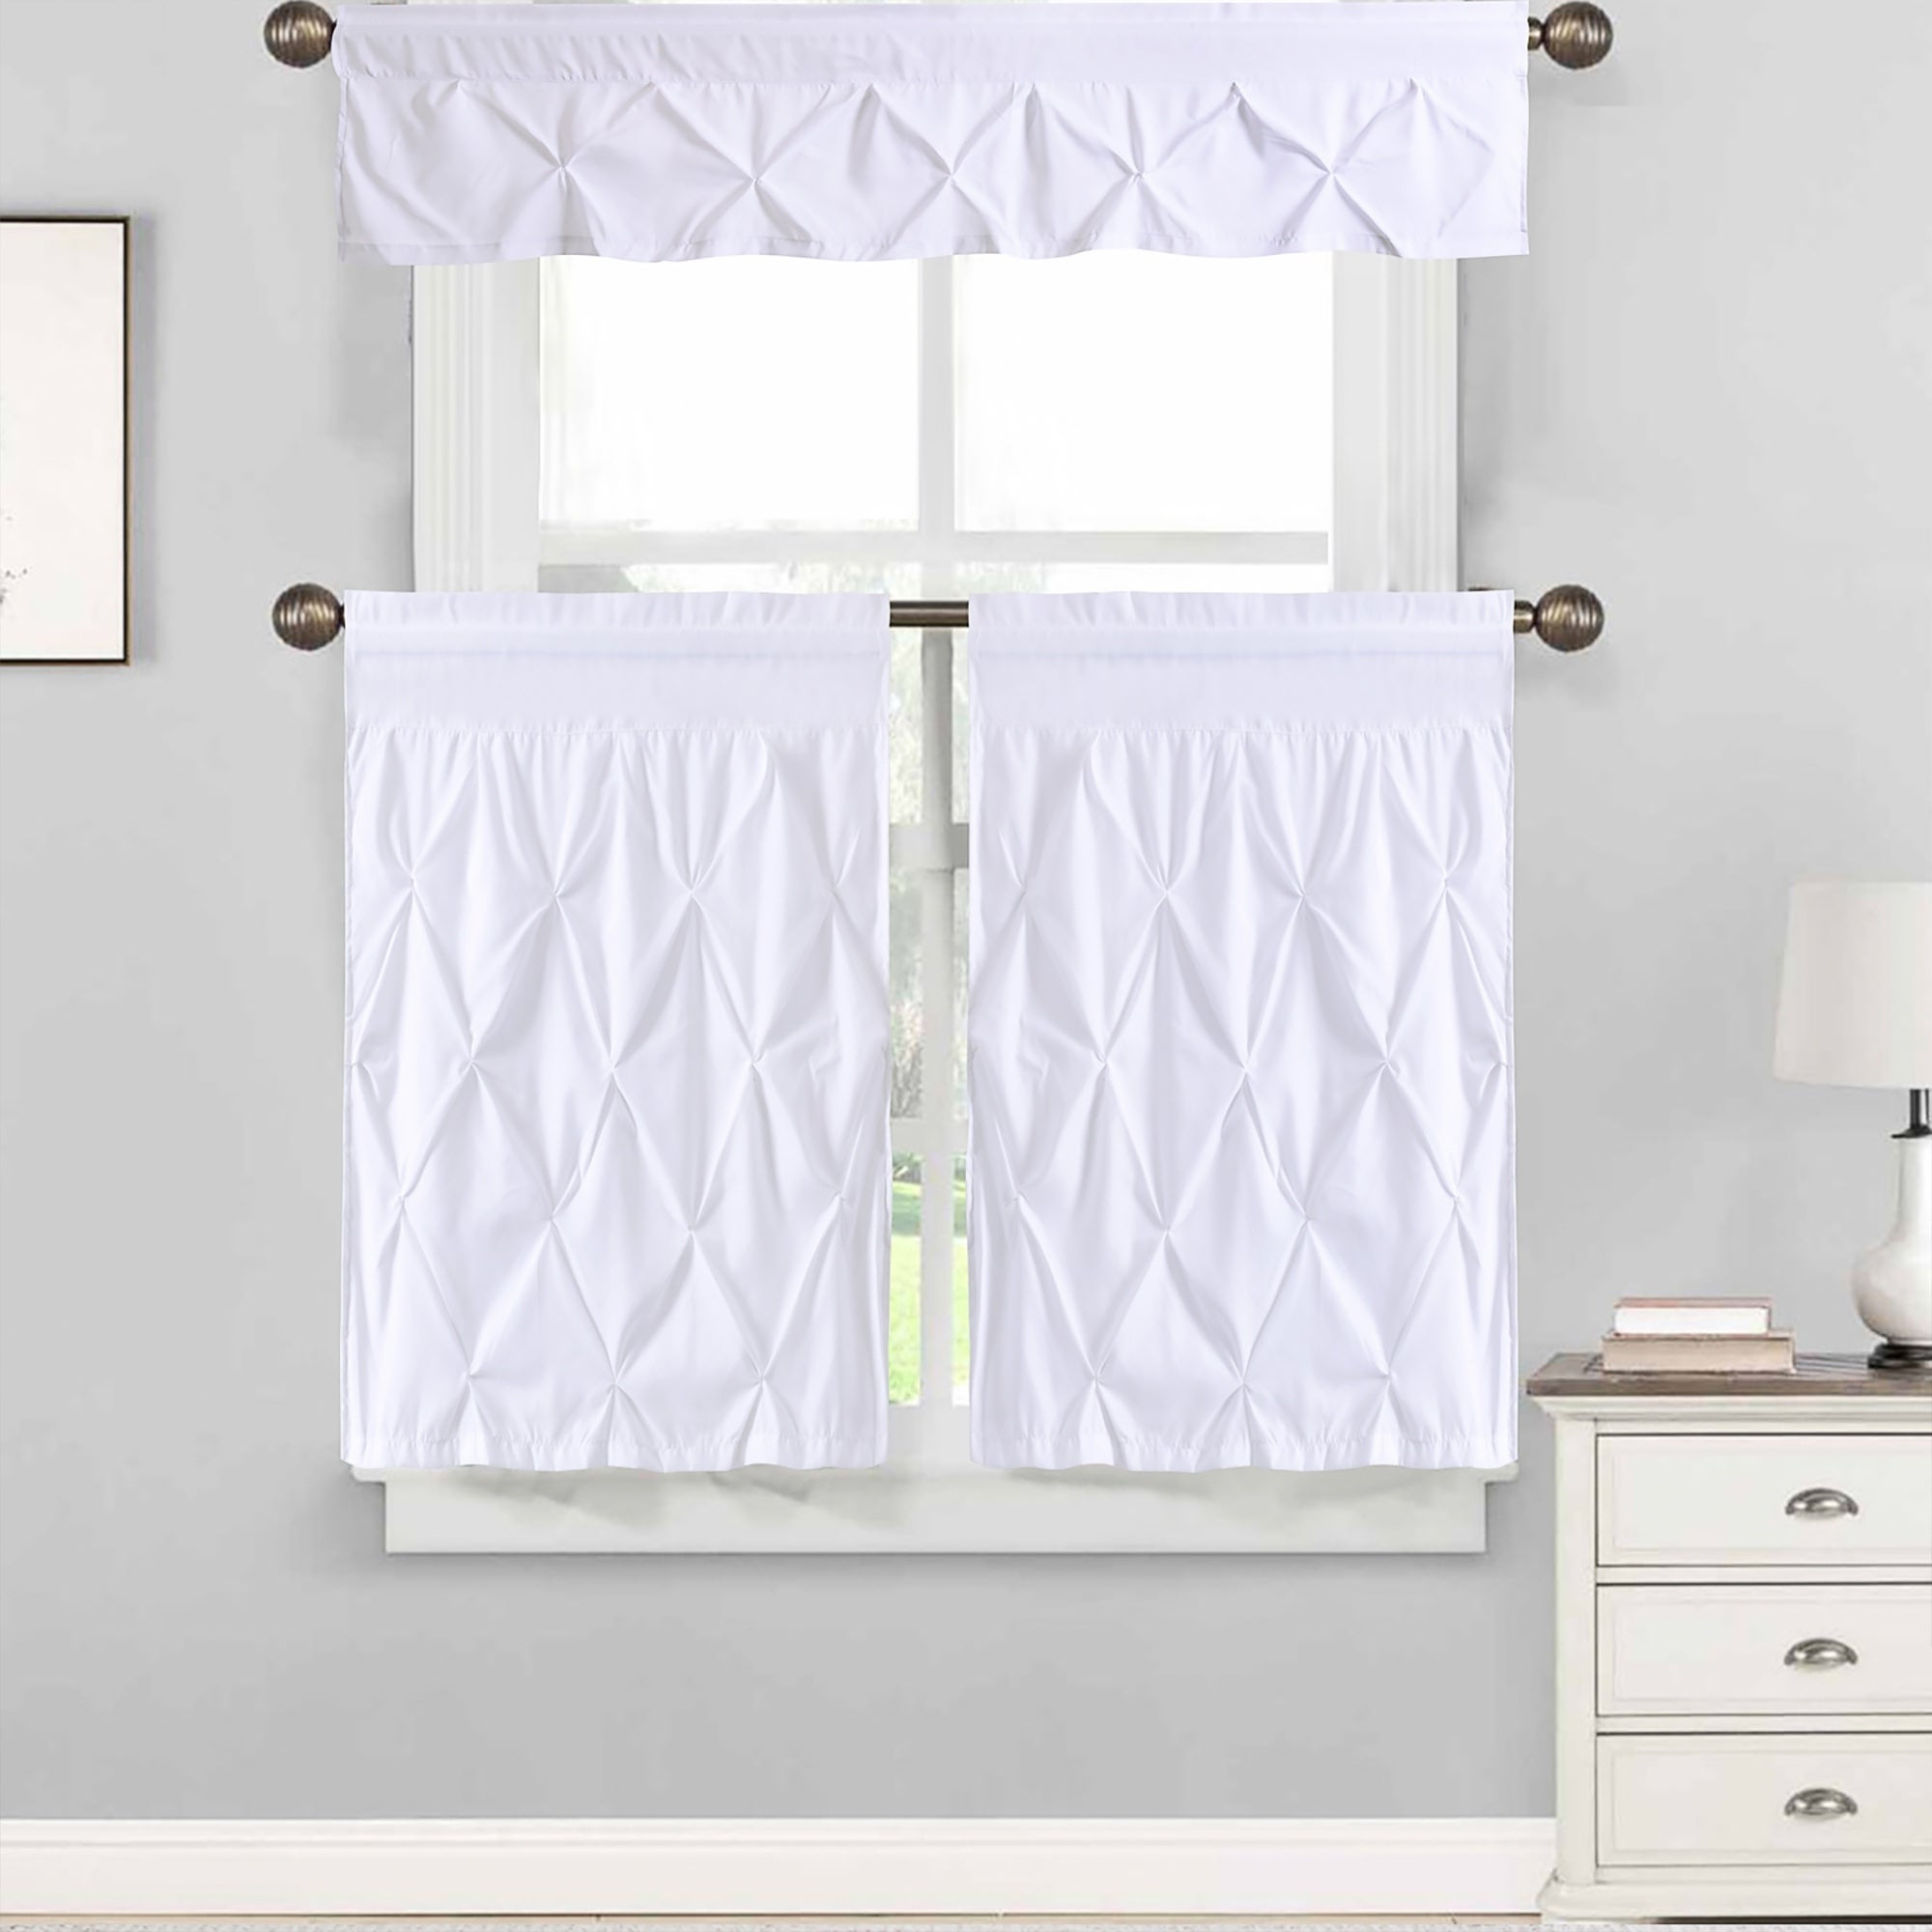 "Well Known Hudson Pintuck Window Curtain Valances In Hudson Pintuck Window Curtain Tier And Valance Set (24""l Or 36""l) White (View 3 of 20)"